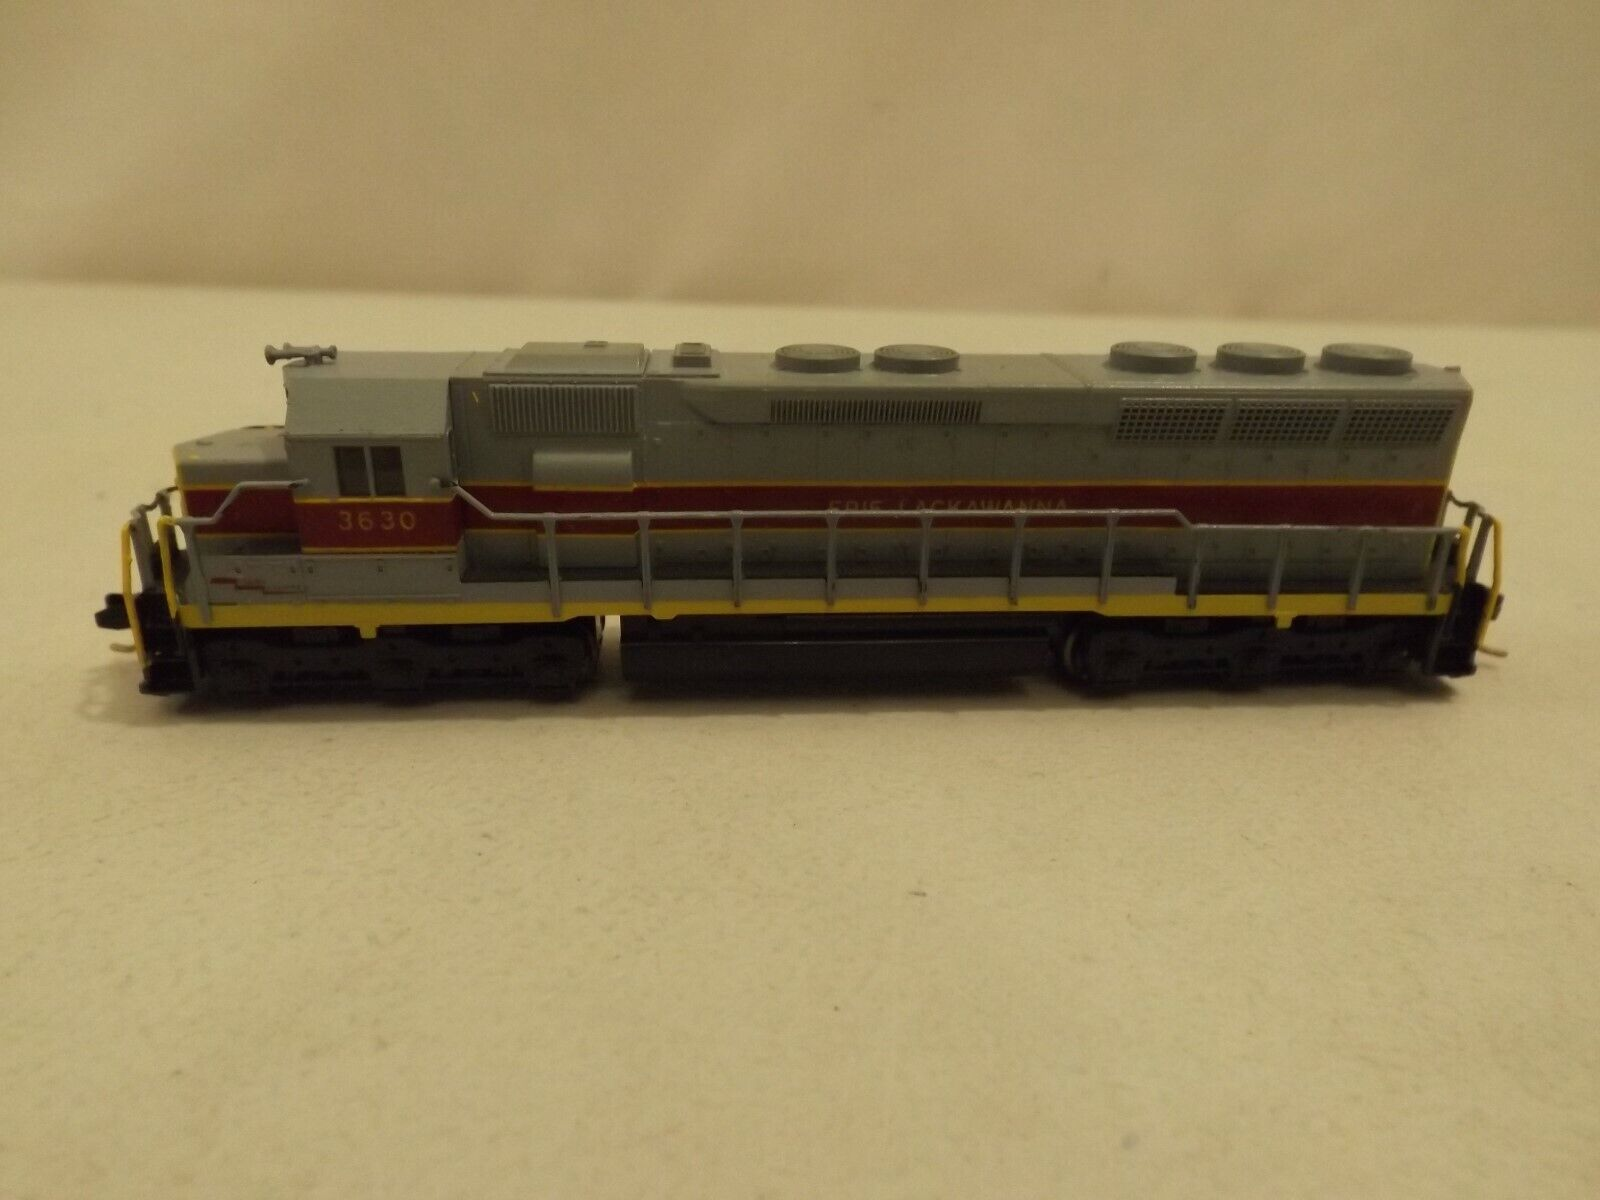 N gauge Kato ELW diesel engine, in original box